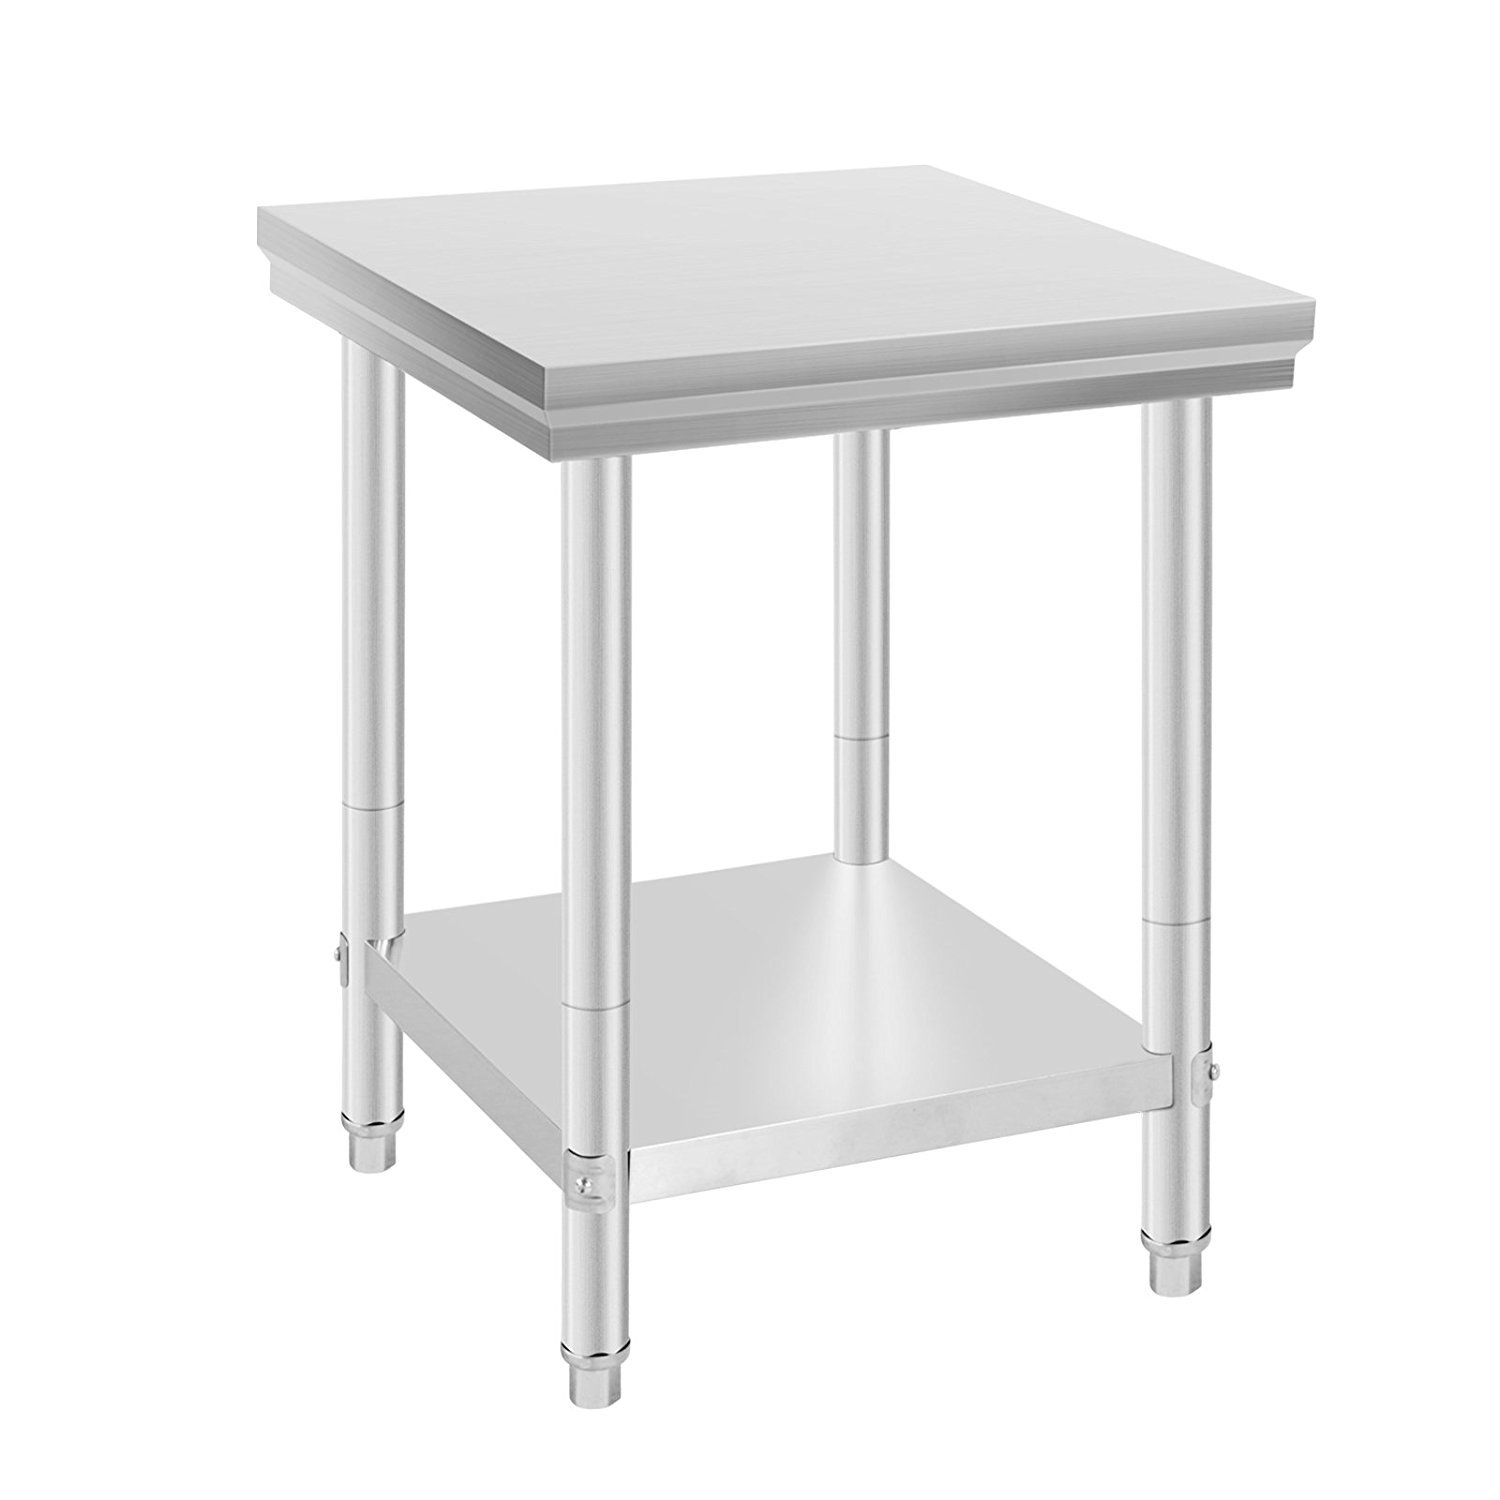 Happybuy NSF Stainless Steel Work Table for Commercial Kitchen Prep Work Table with Lower Shelf Work Table Silvery 24 x 24 inches